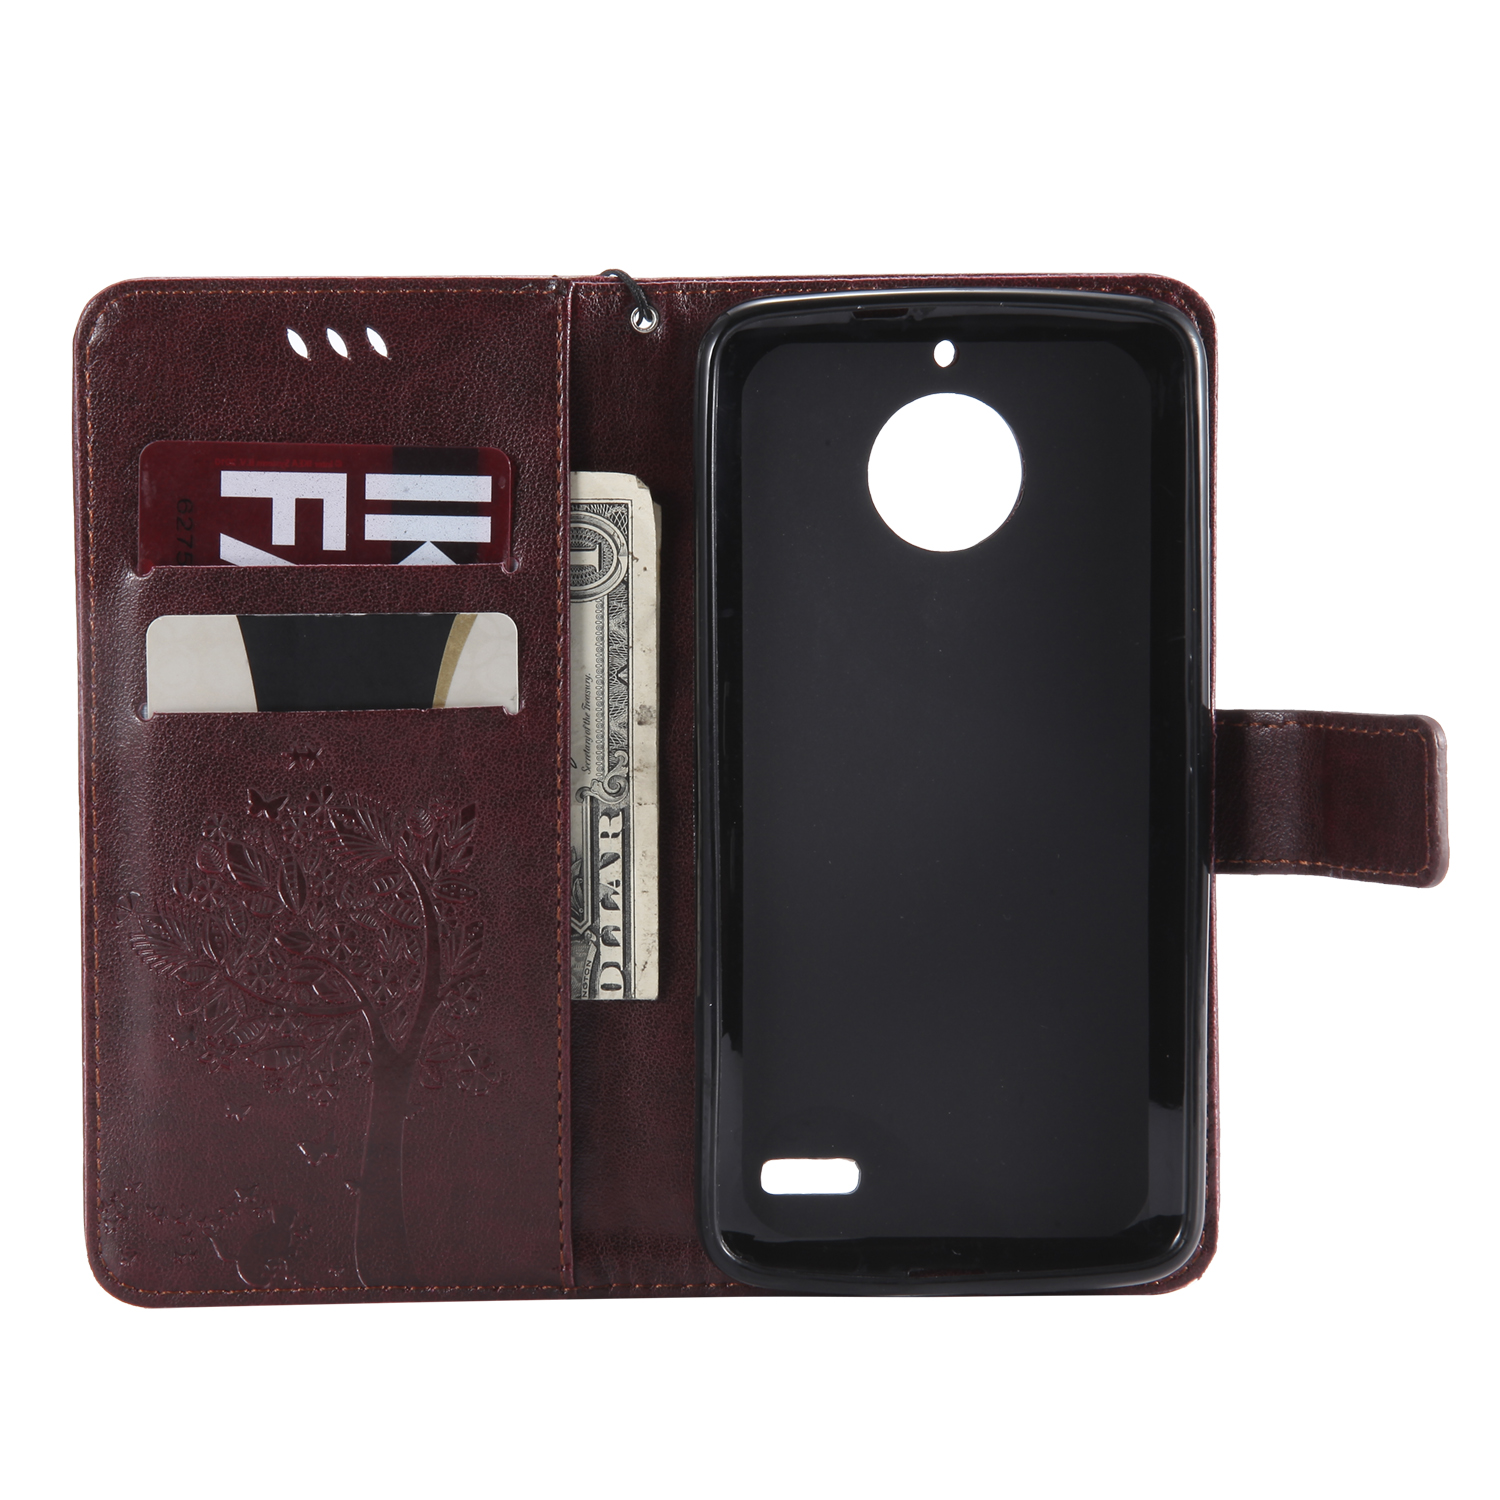 Flip <font><b>Case</b></font> For Motorola <font><b>Moto</b></font> <font><b>E4</b></font> Leather Phone <font><b>Cases</b></font> <font><b>Moto</b></font> <font><b>E4</b></font> XT1760 <font><b>XT1761</b></font> XT1762 XT1763 XT1764 XT1765 XT1766 XT1767 XT1768 XT1769 image